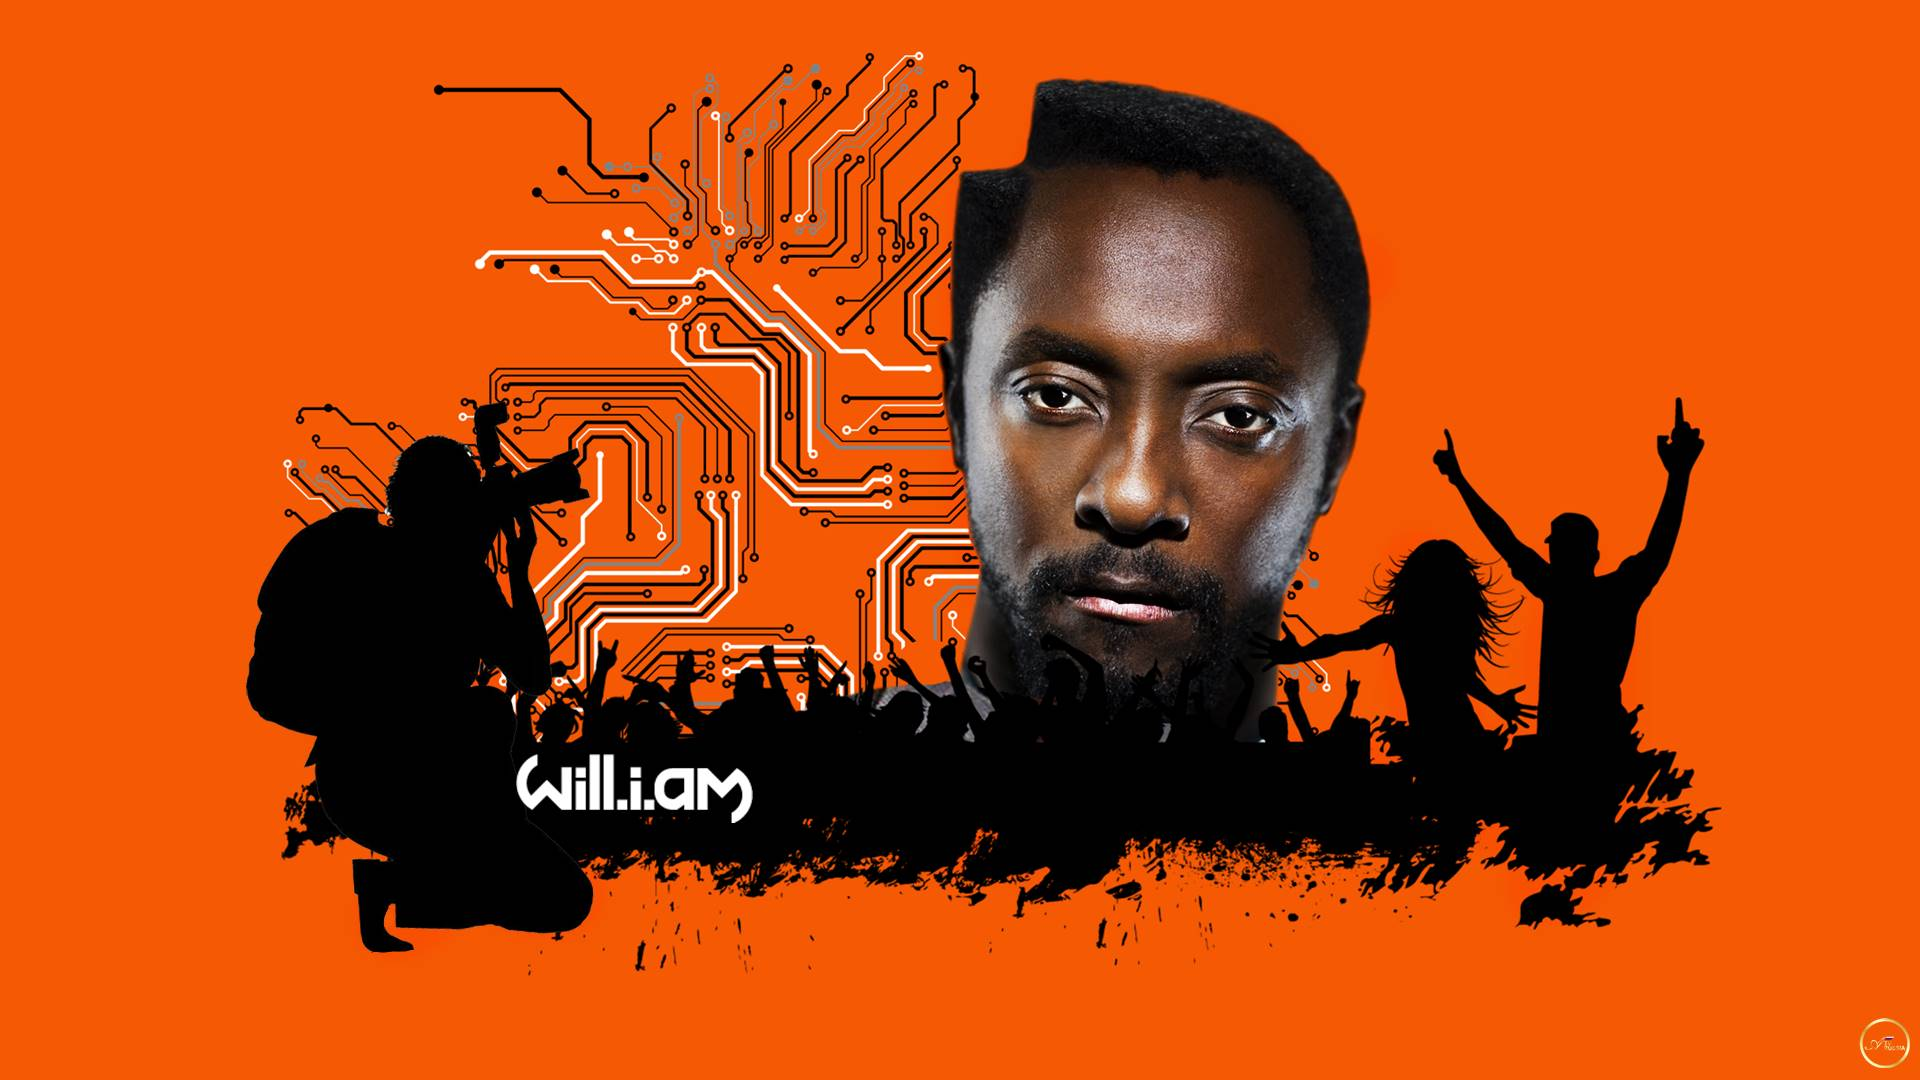 Adagio TV Russia presents:  Will.i.am